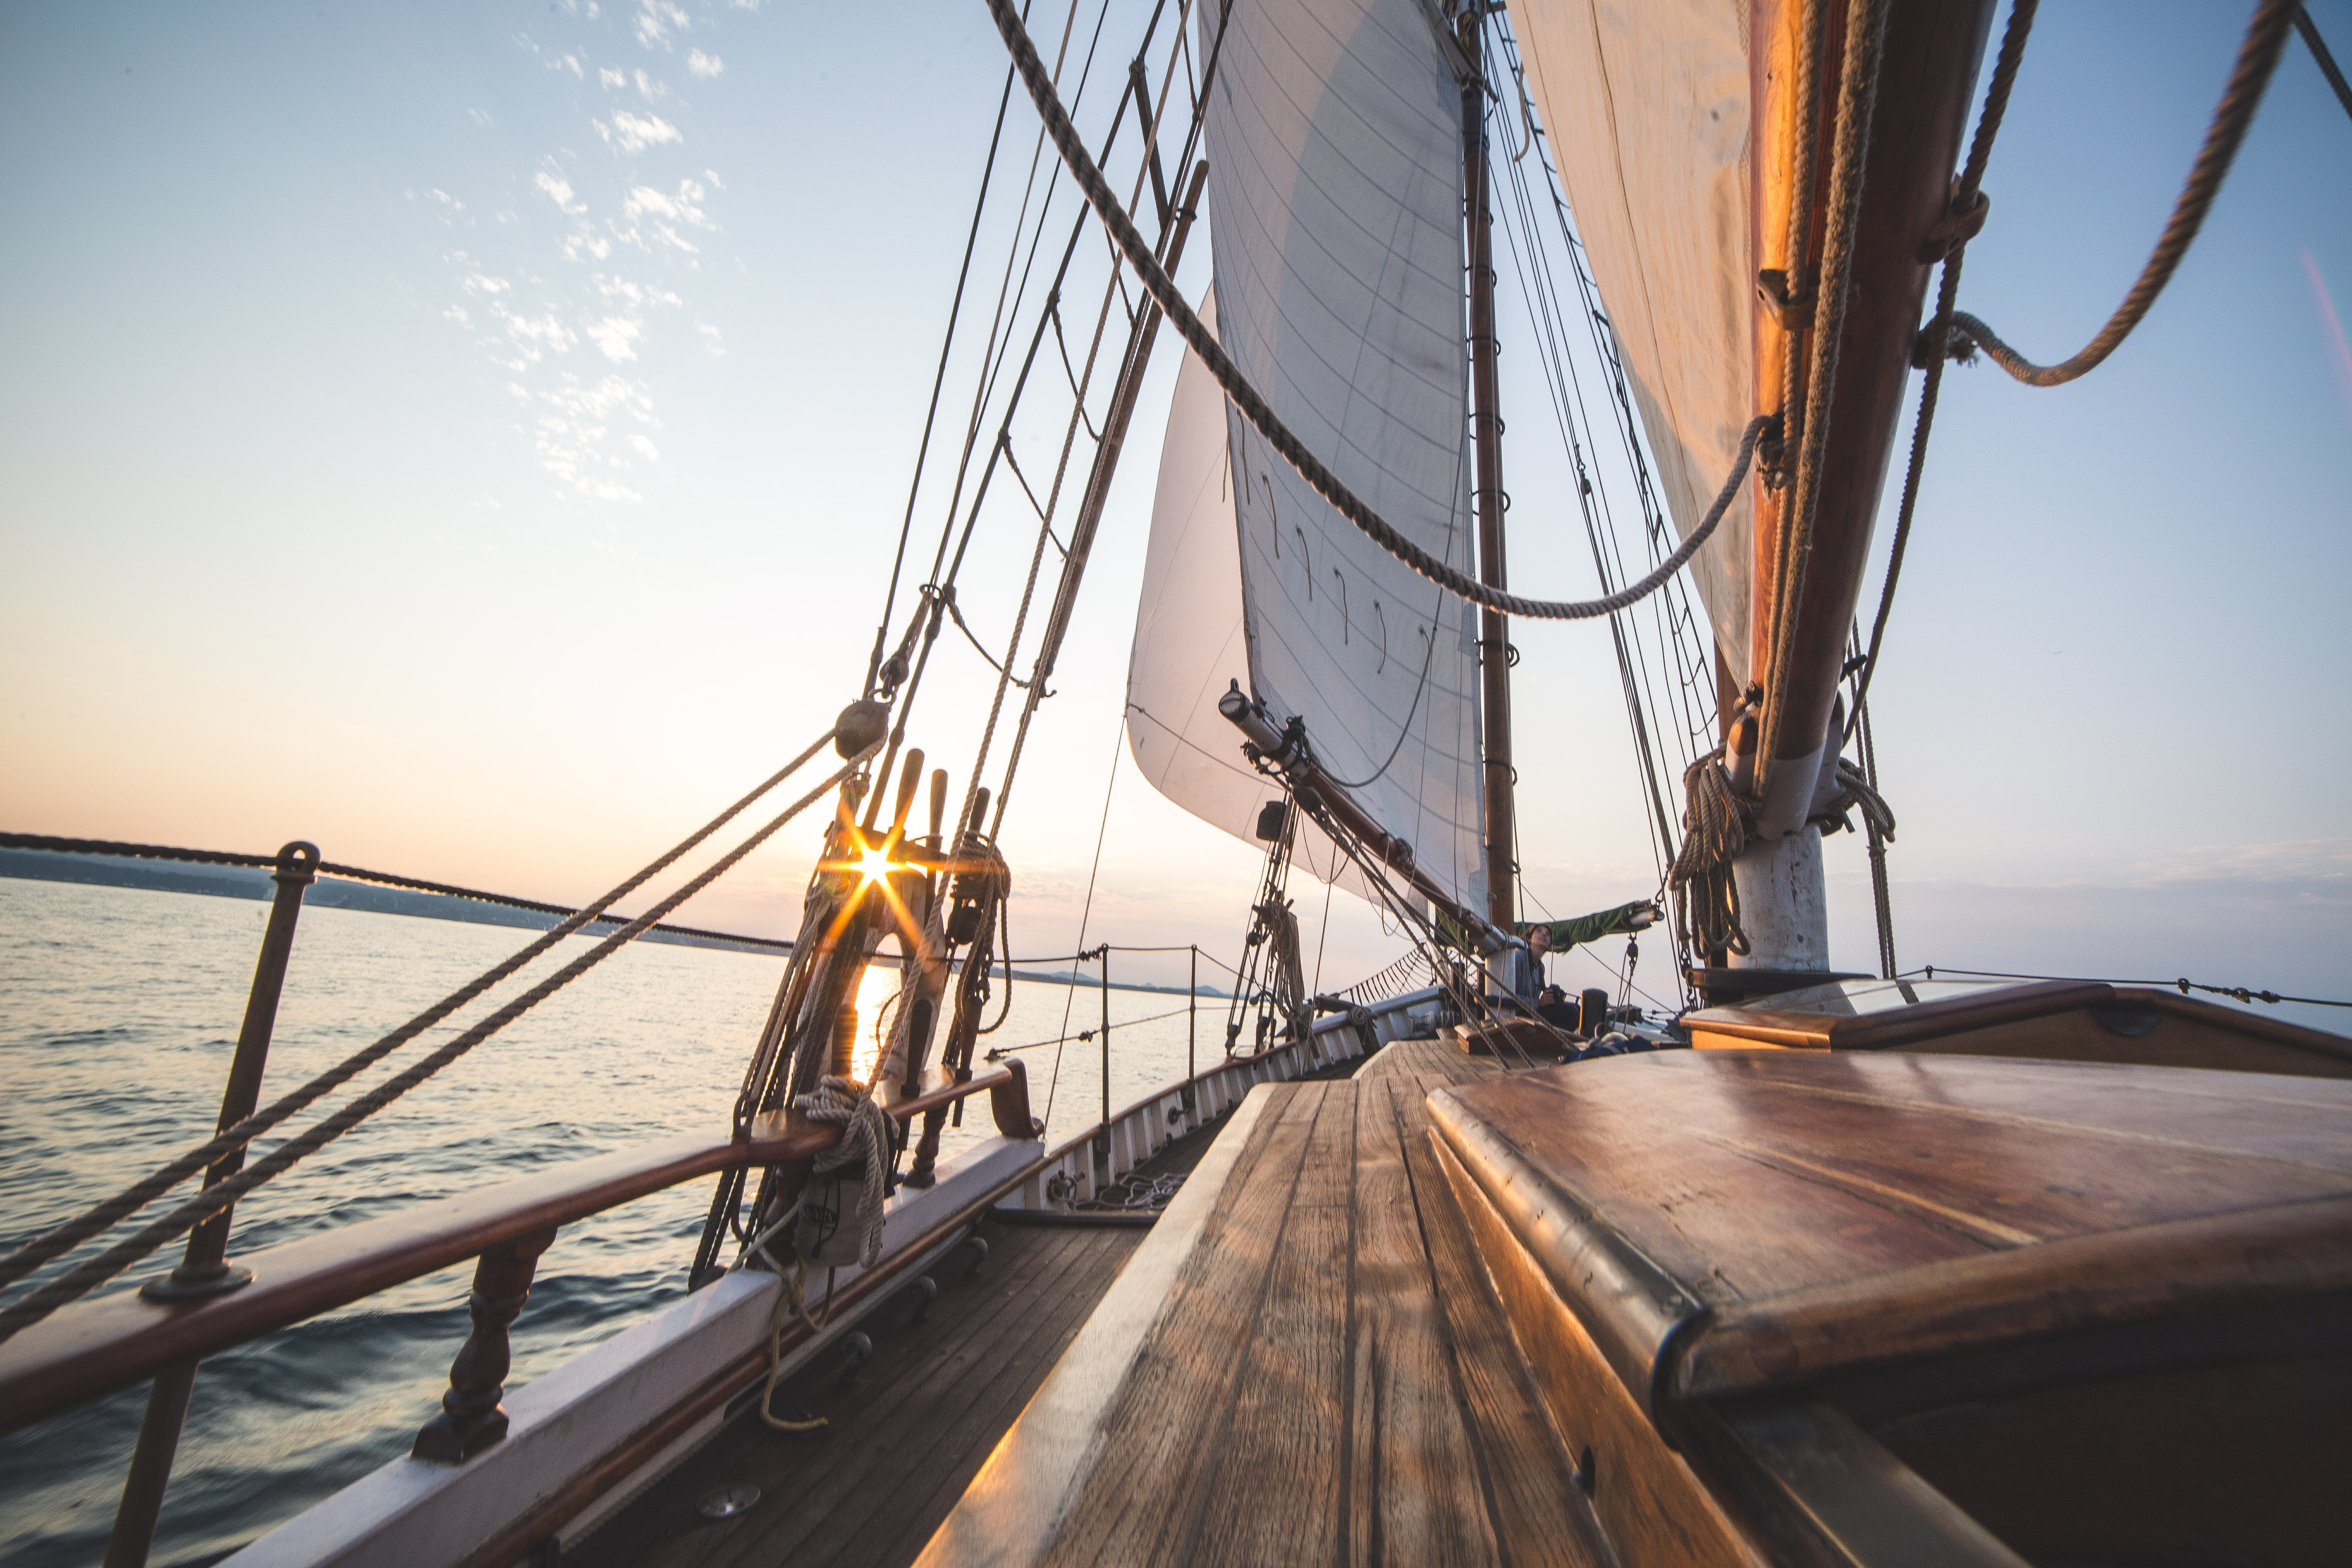 Where to Sail this Summer?